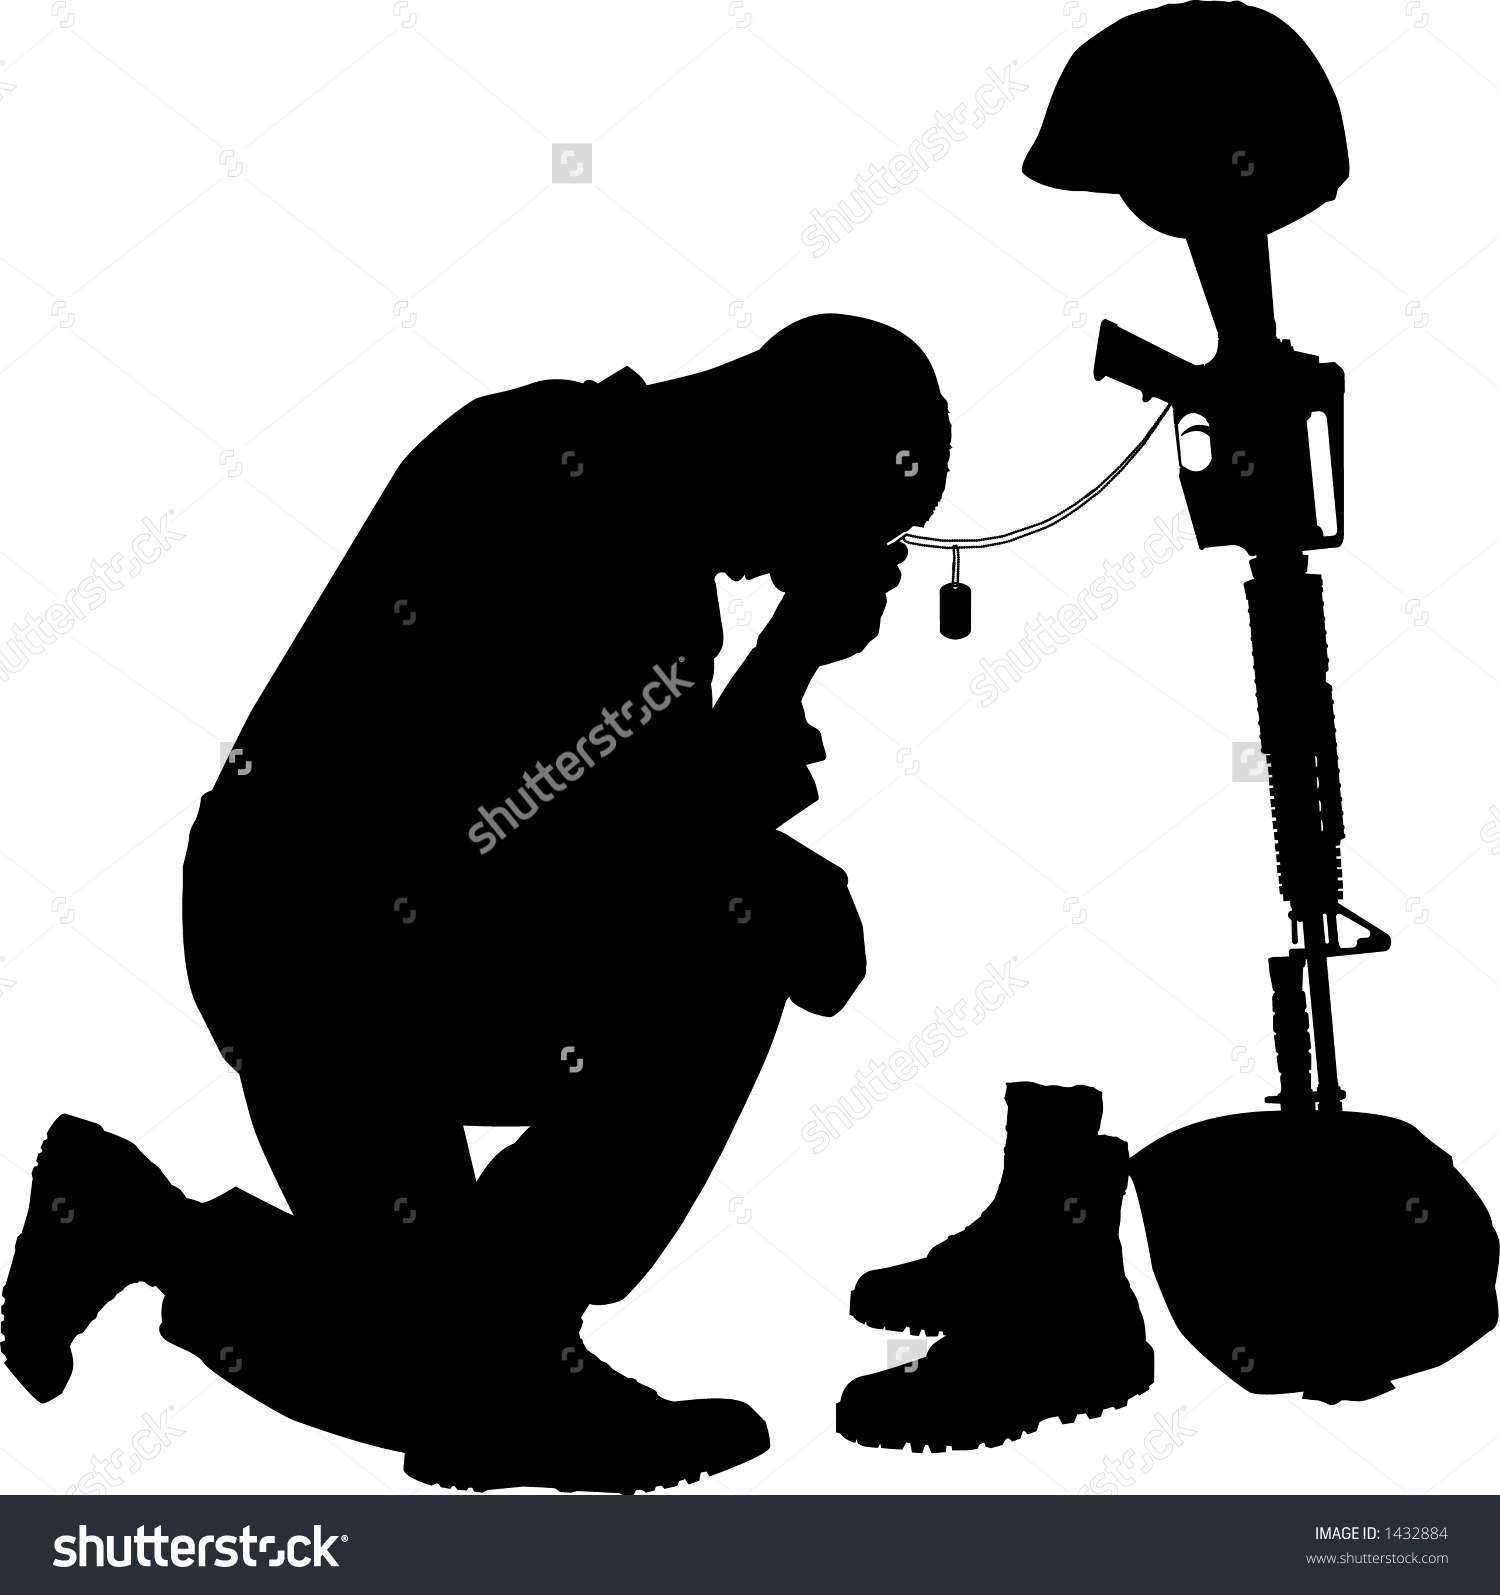 1500x1595 Silhouette Of Soldier Shooting With Gun Vector Image